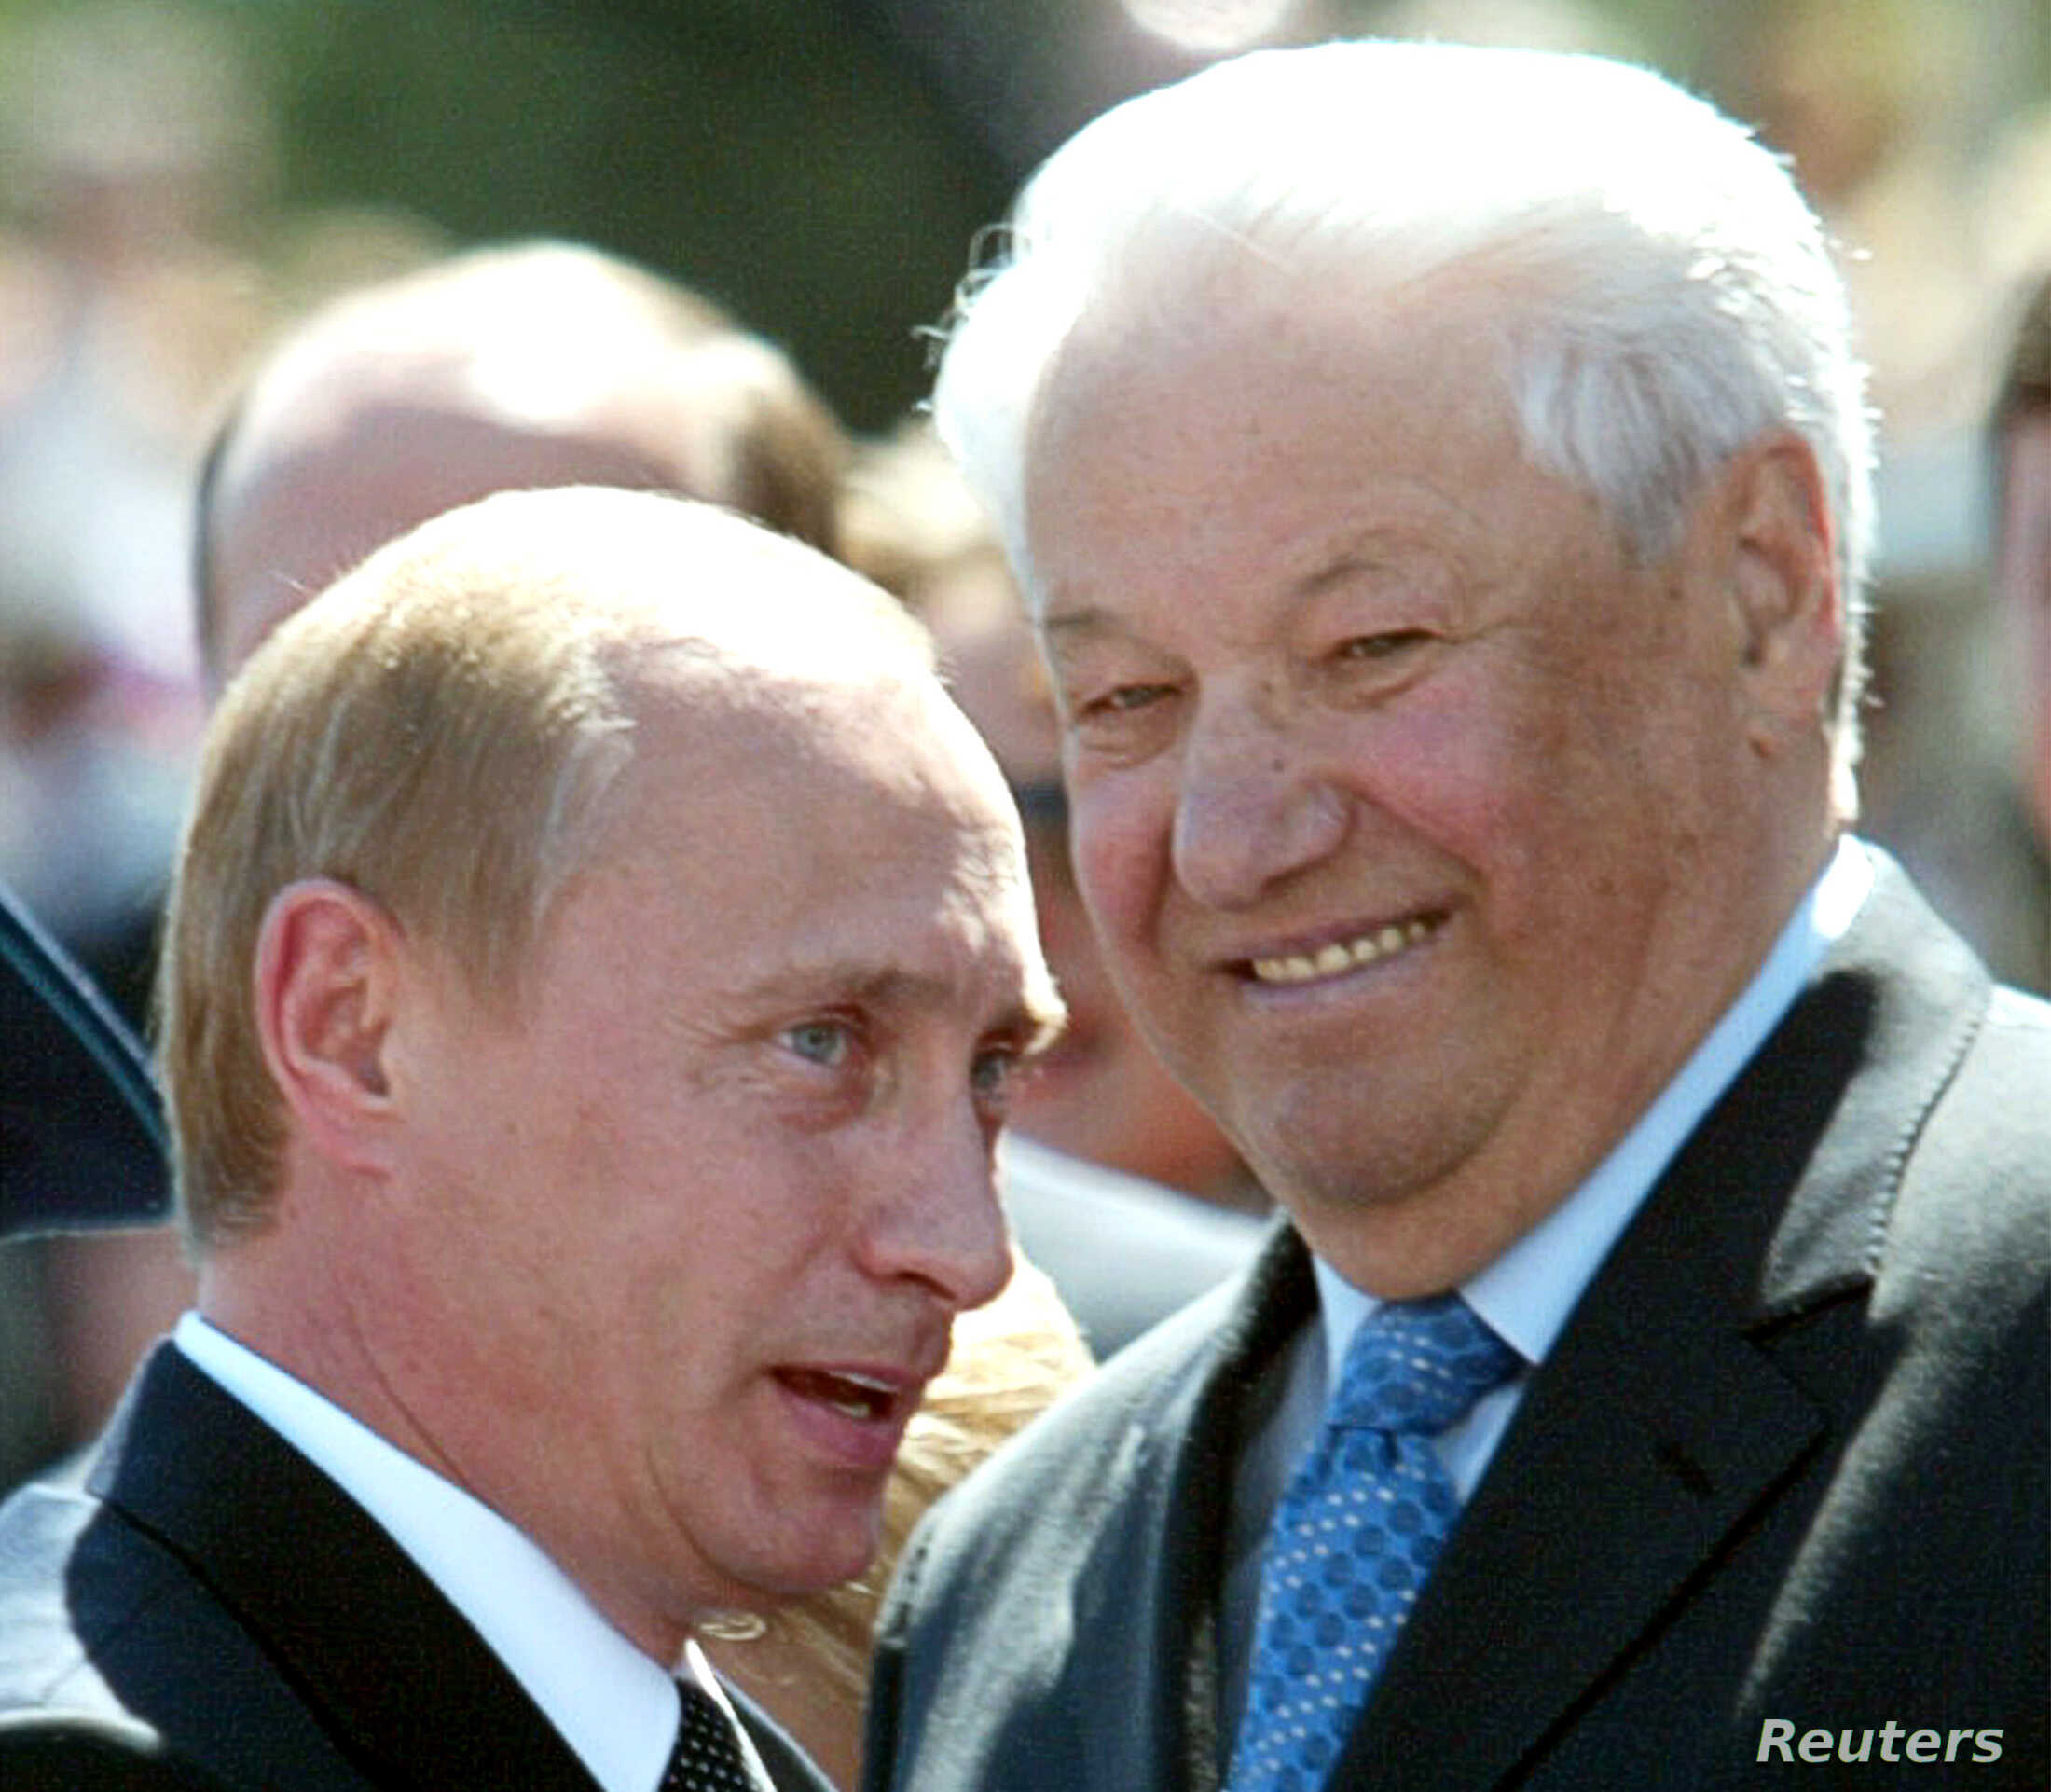 """Russian President Vladimir Putin speaks as former Russian president Boris Yeltsin (R) smiles during festivities in Red Square in Moscow, June 12, 2004. The holiday, mostly commonly known among Russians as """"Independence Day"""", marks the adoption by the..."""